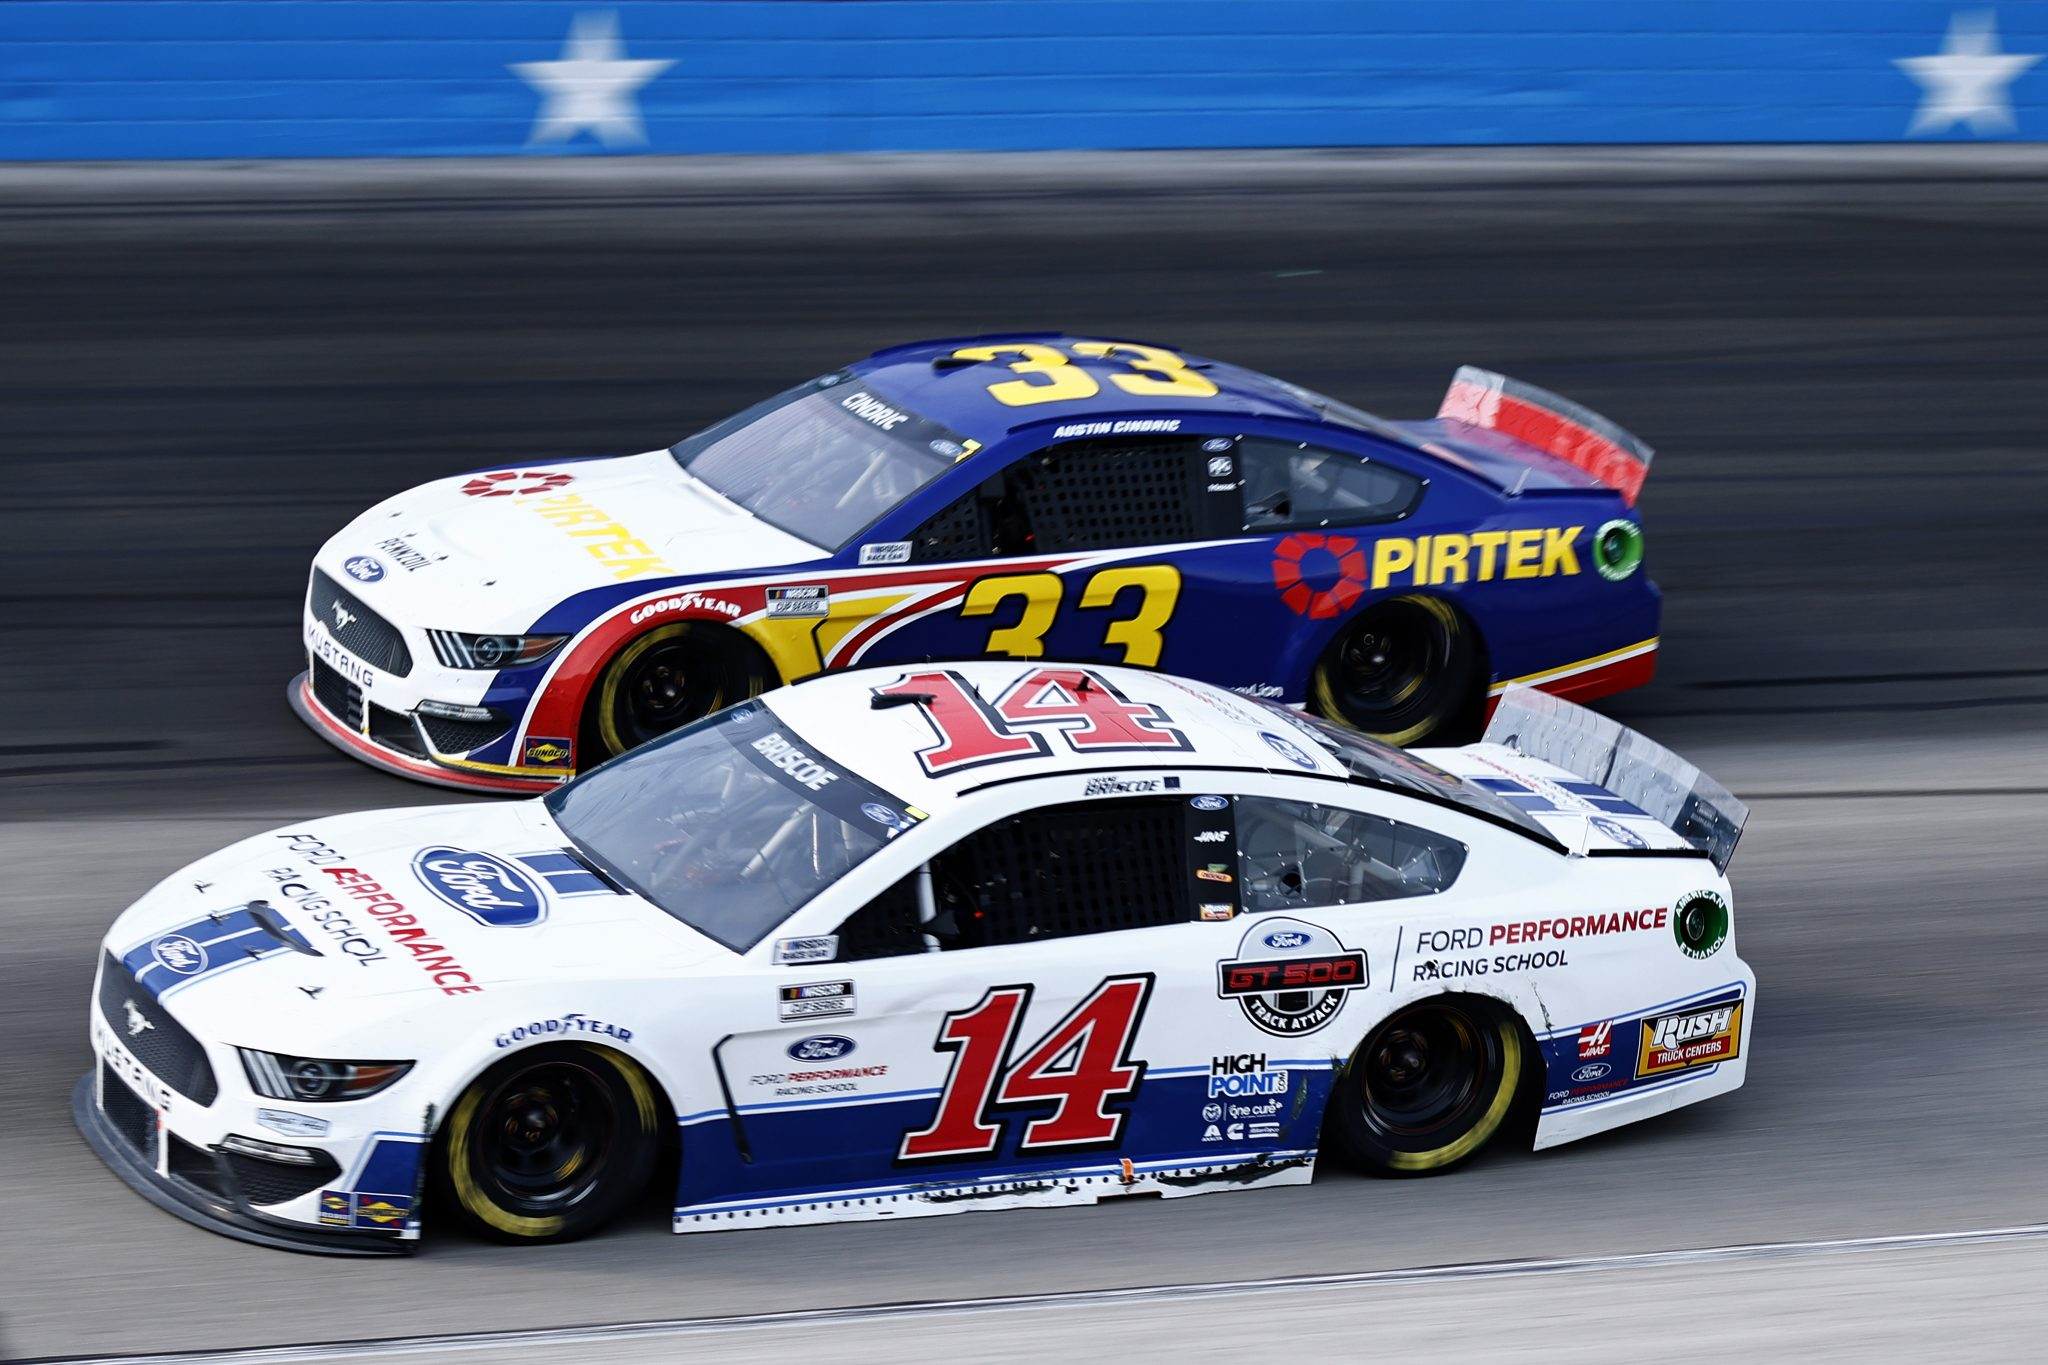 FORT WORTH, TEXAS - JUNE 13: Chase Briscoe, driver of the #14 Ford Performance Racing School Ford, and Austin Cindric, driver of the #33 Pirtek Ford, race during the NASCAR All-Star Open at Texas Motor Speedway on June 13, 2021 in Fort Worth, Texas. (Photo by Jared C. Tilton/Getty Images)   Getty Images